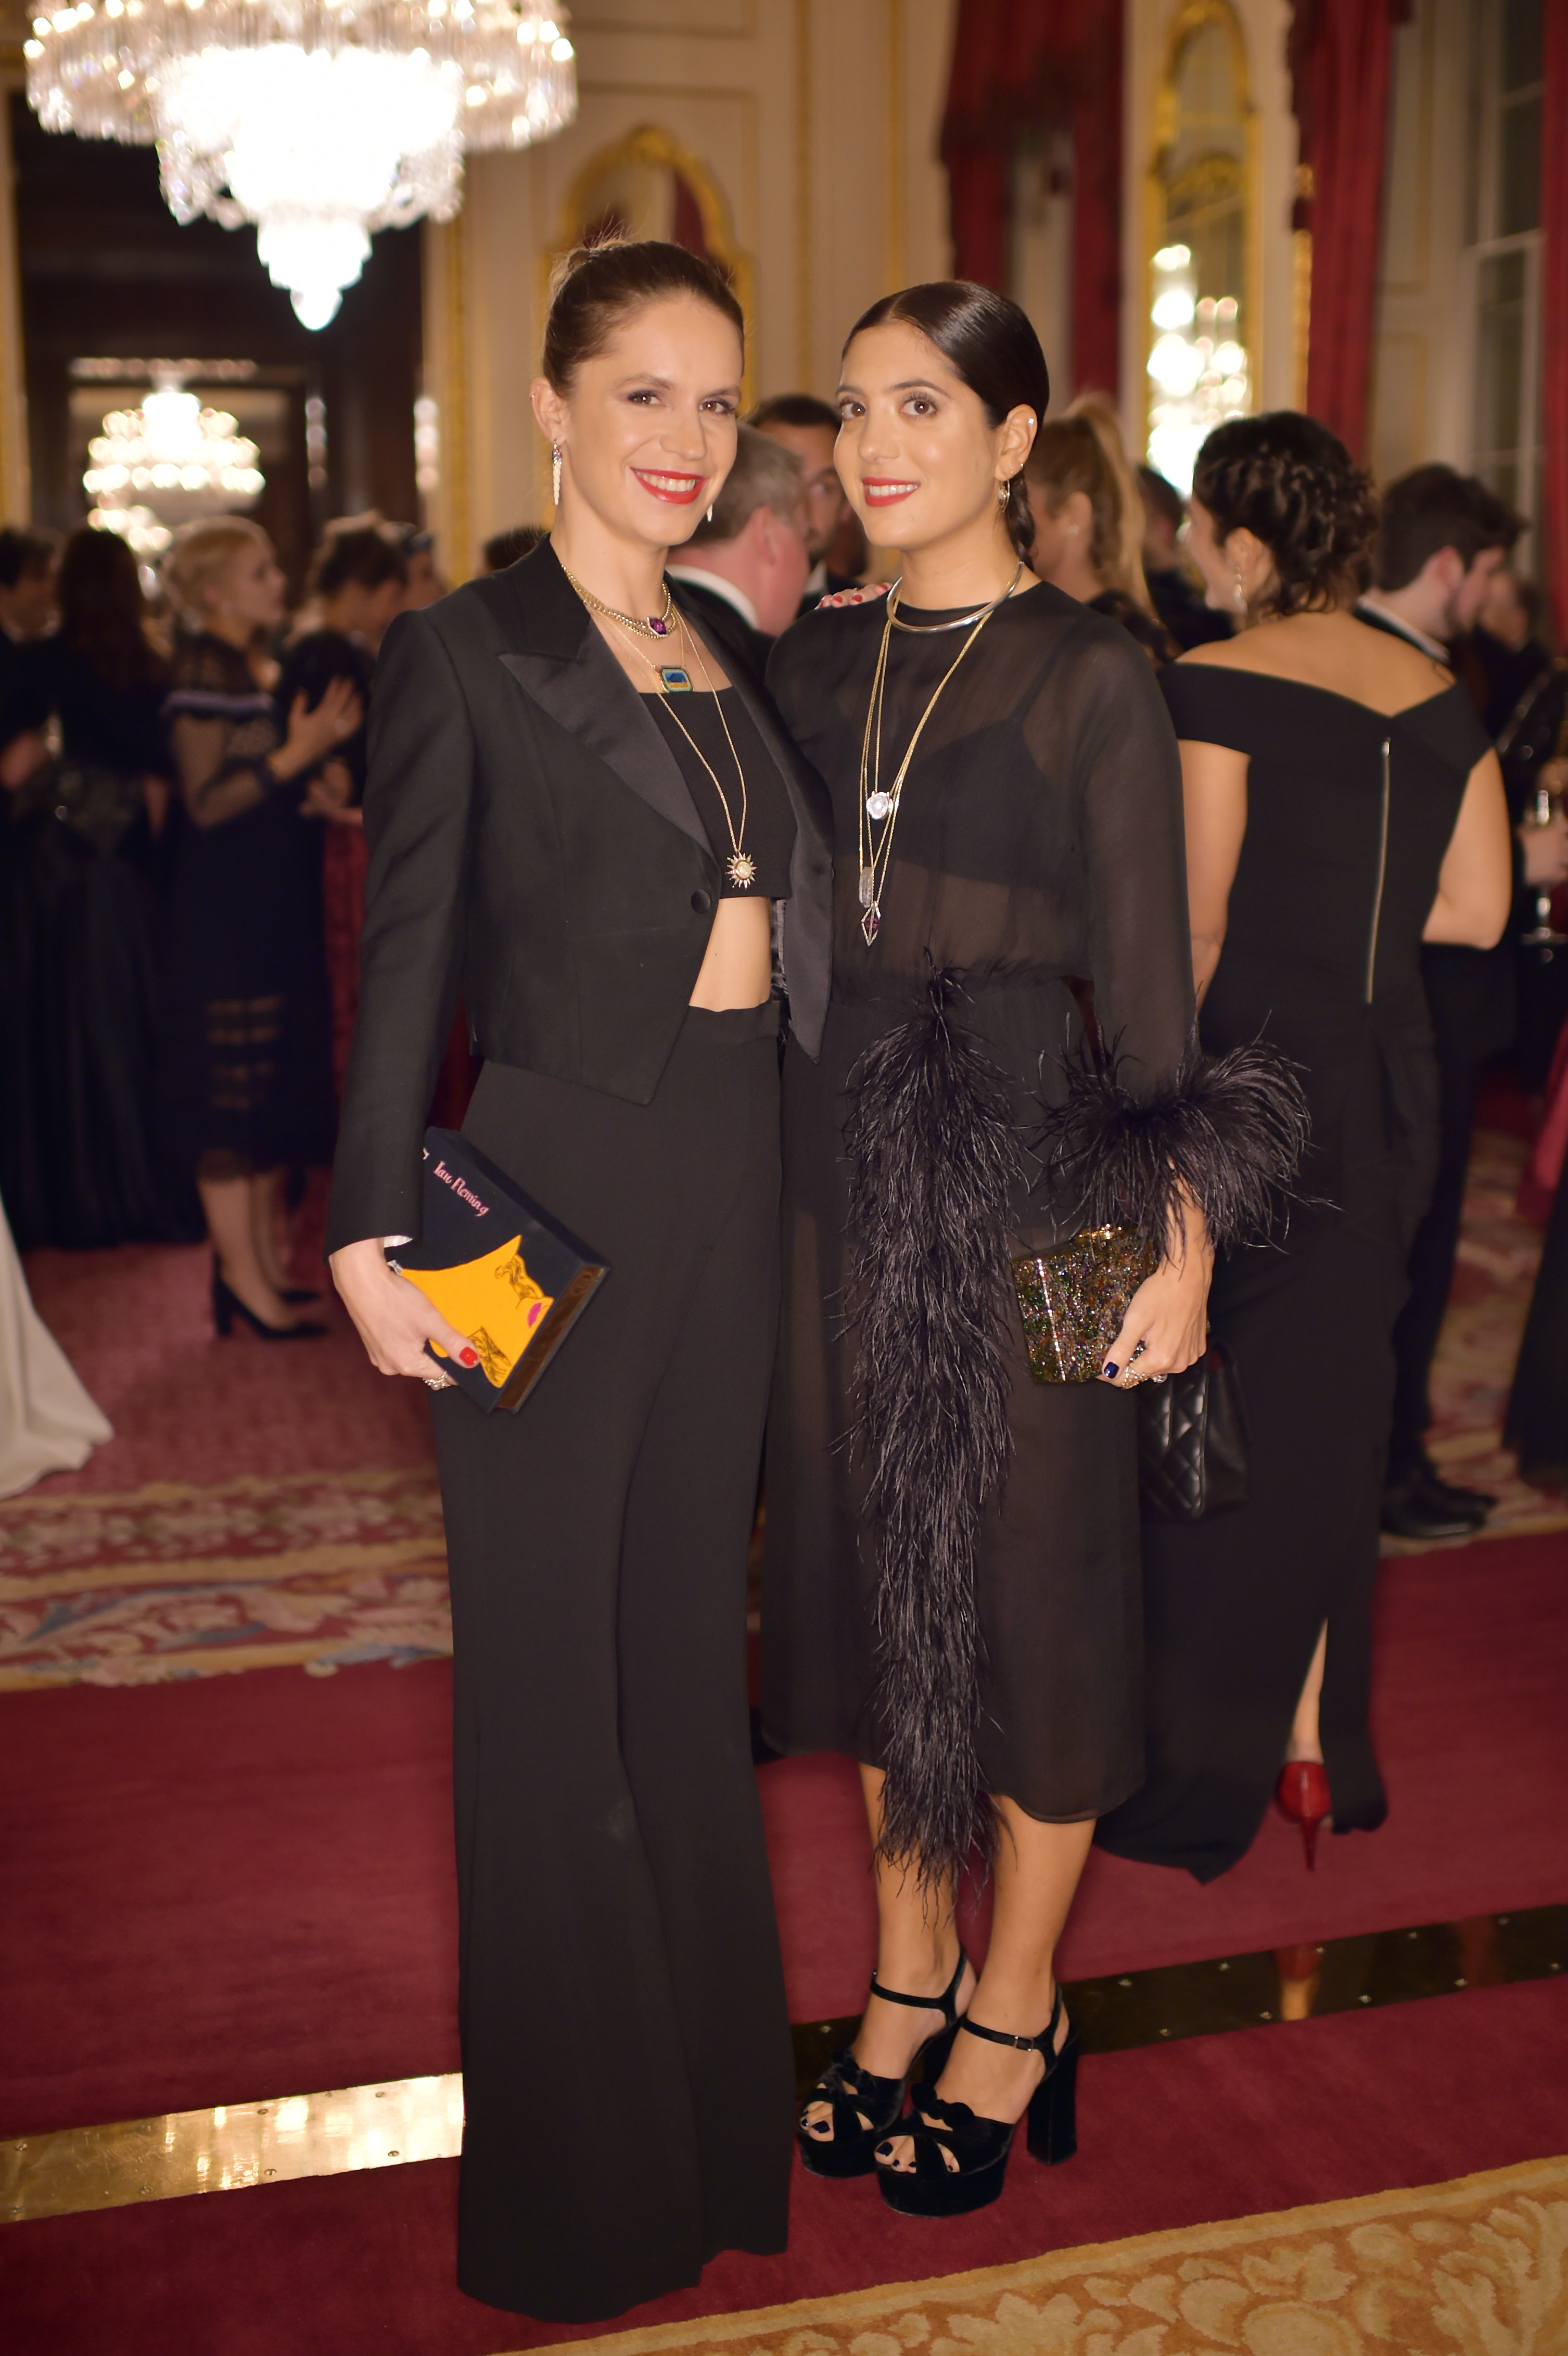 Eugenie Niarchos and Noor FaresThe Leopard Awards in Aid of The Prince's Trust, London, UK - 15 Nov 2017